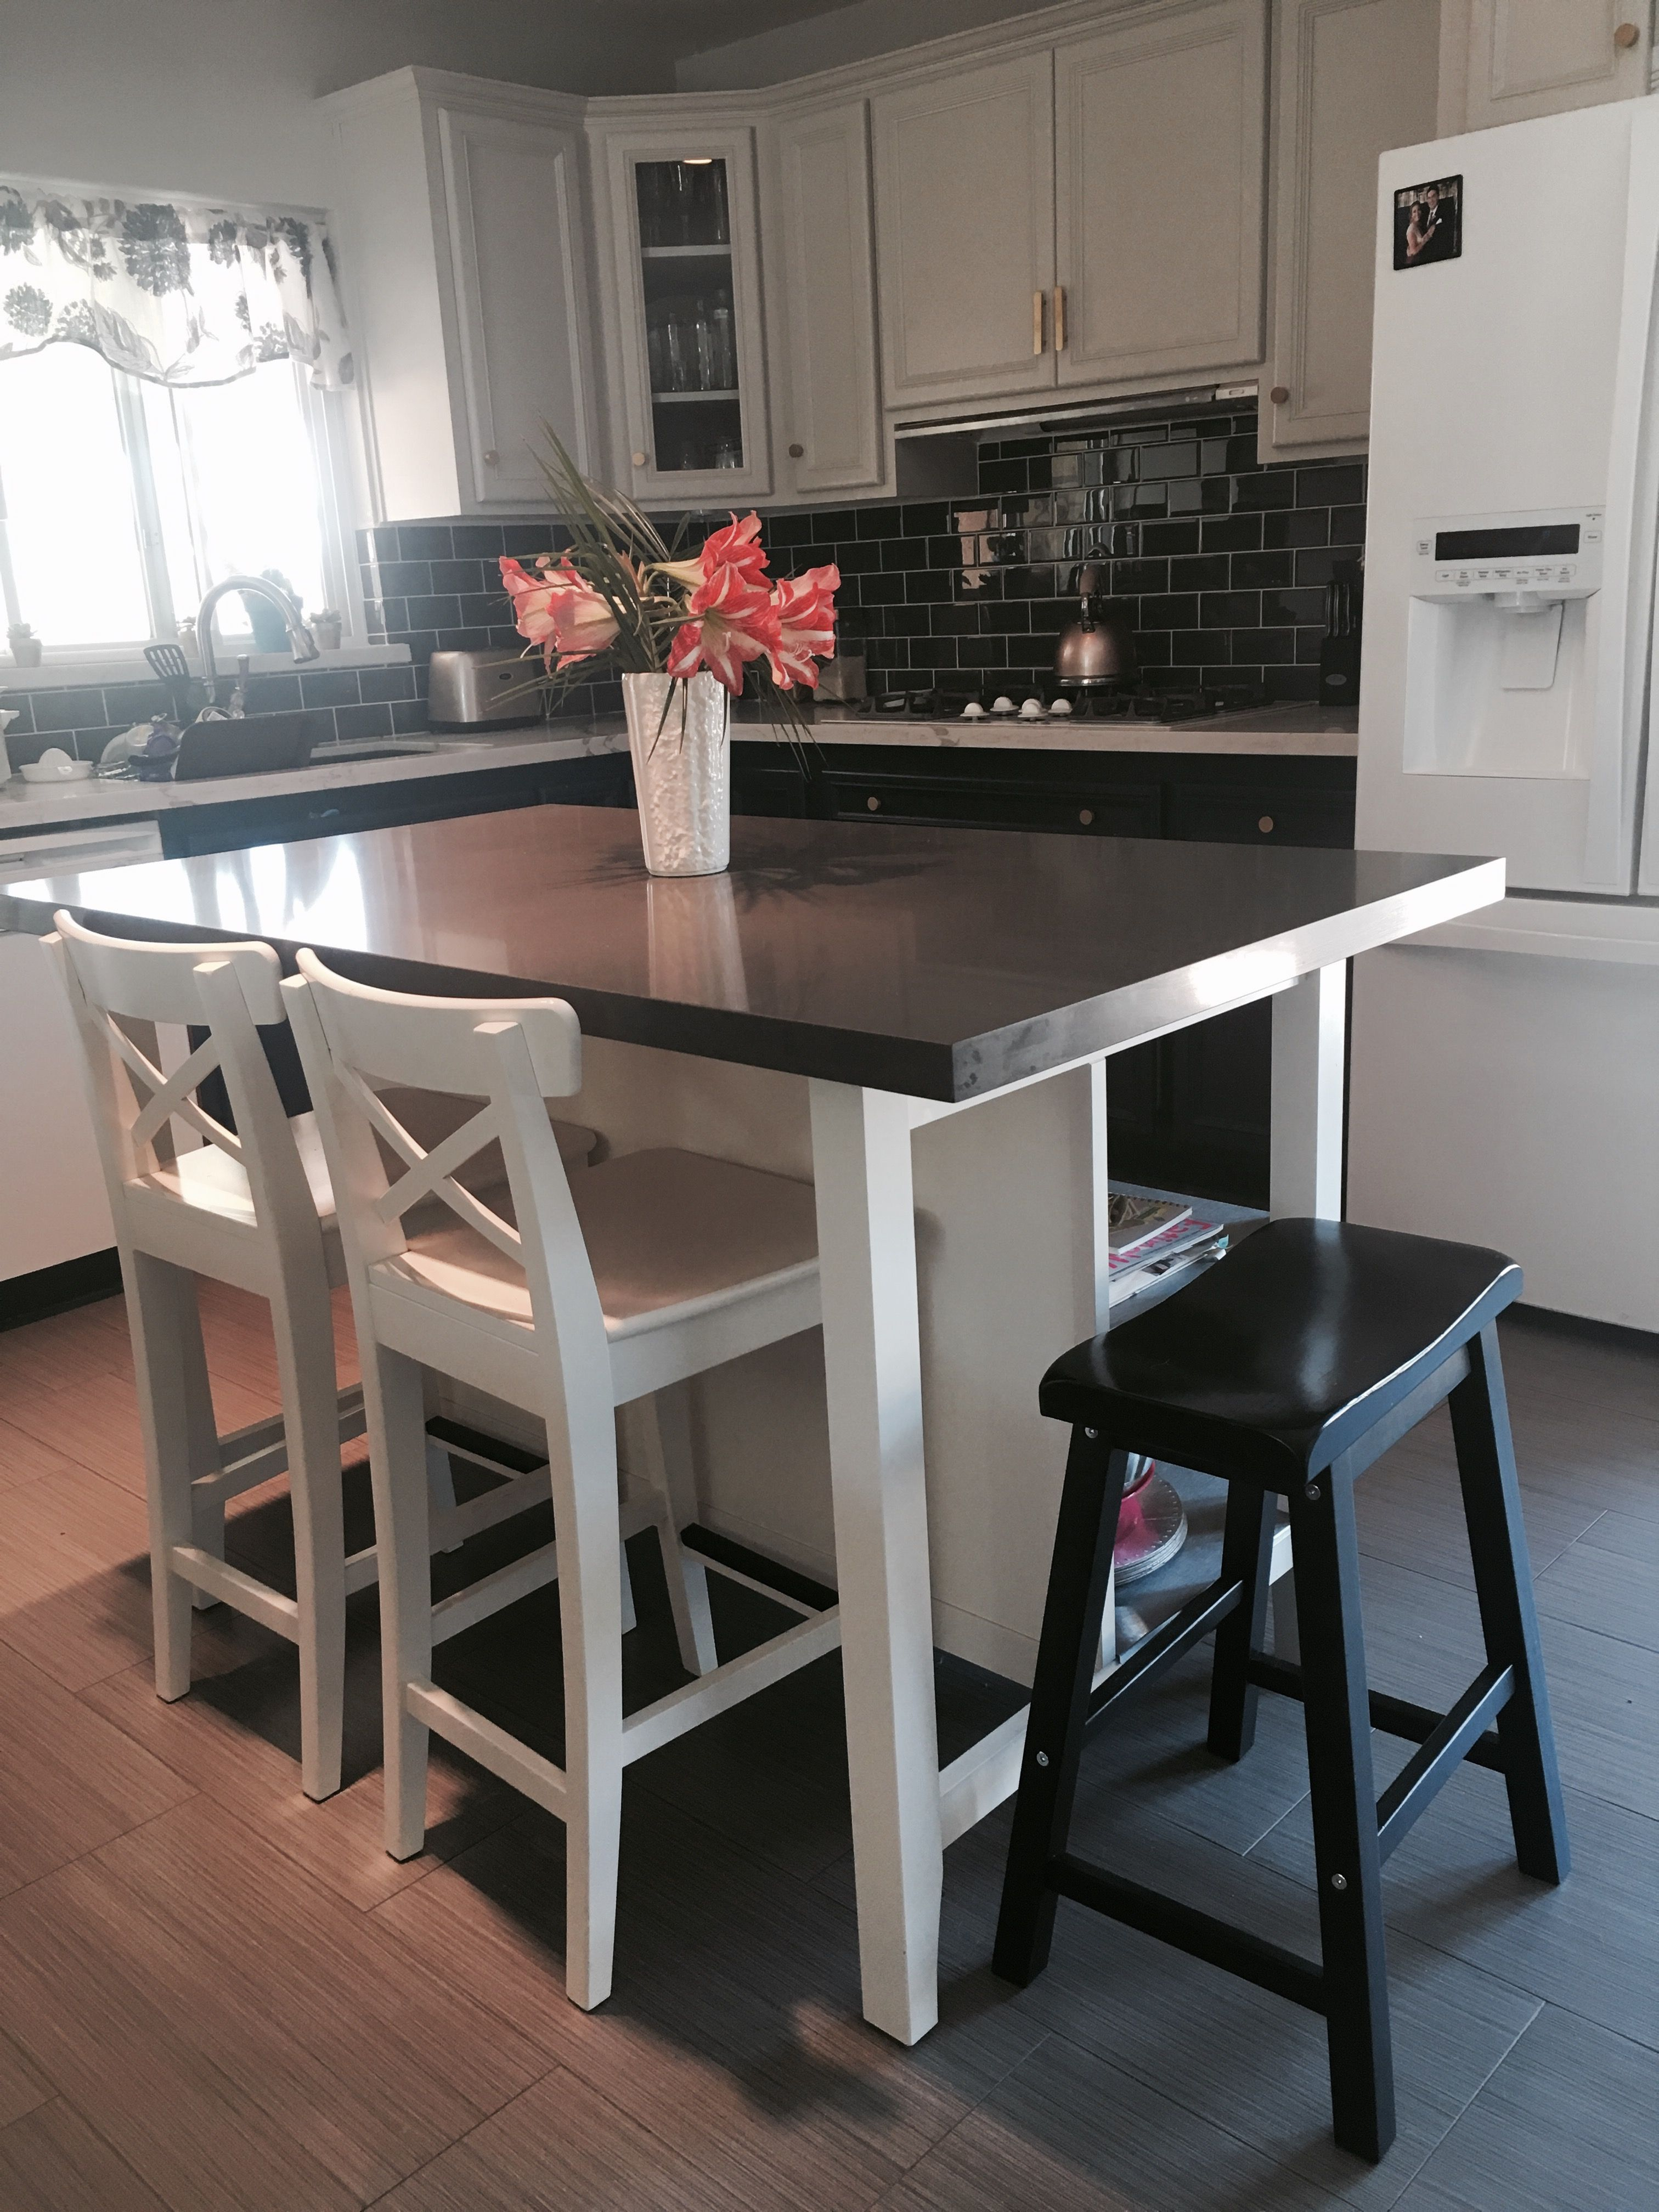 Kitchen Island Table Ikea Coolest Gadgets Stenstorp Hack Here Is Another View Of Our We Added Grey Quartz On Top With More Room To Add A Saddle Bar Stool